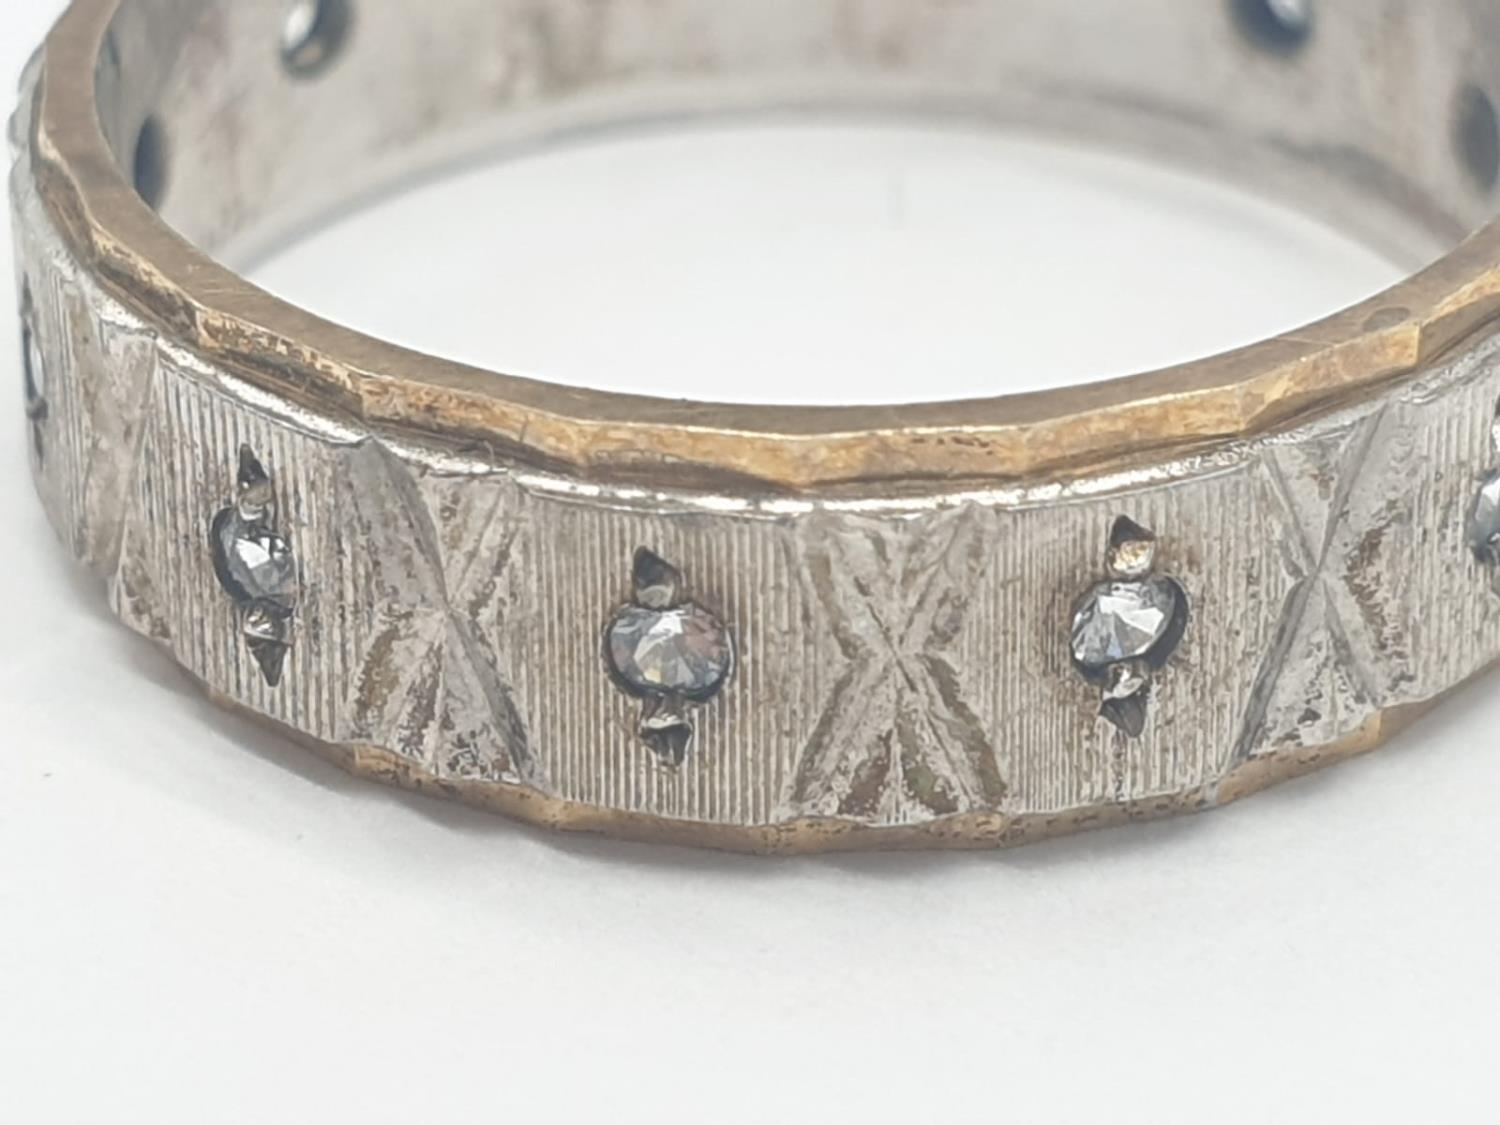 Gold and silver eternity ring, 3.2g weight and size O - Image 2 of 4